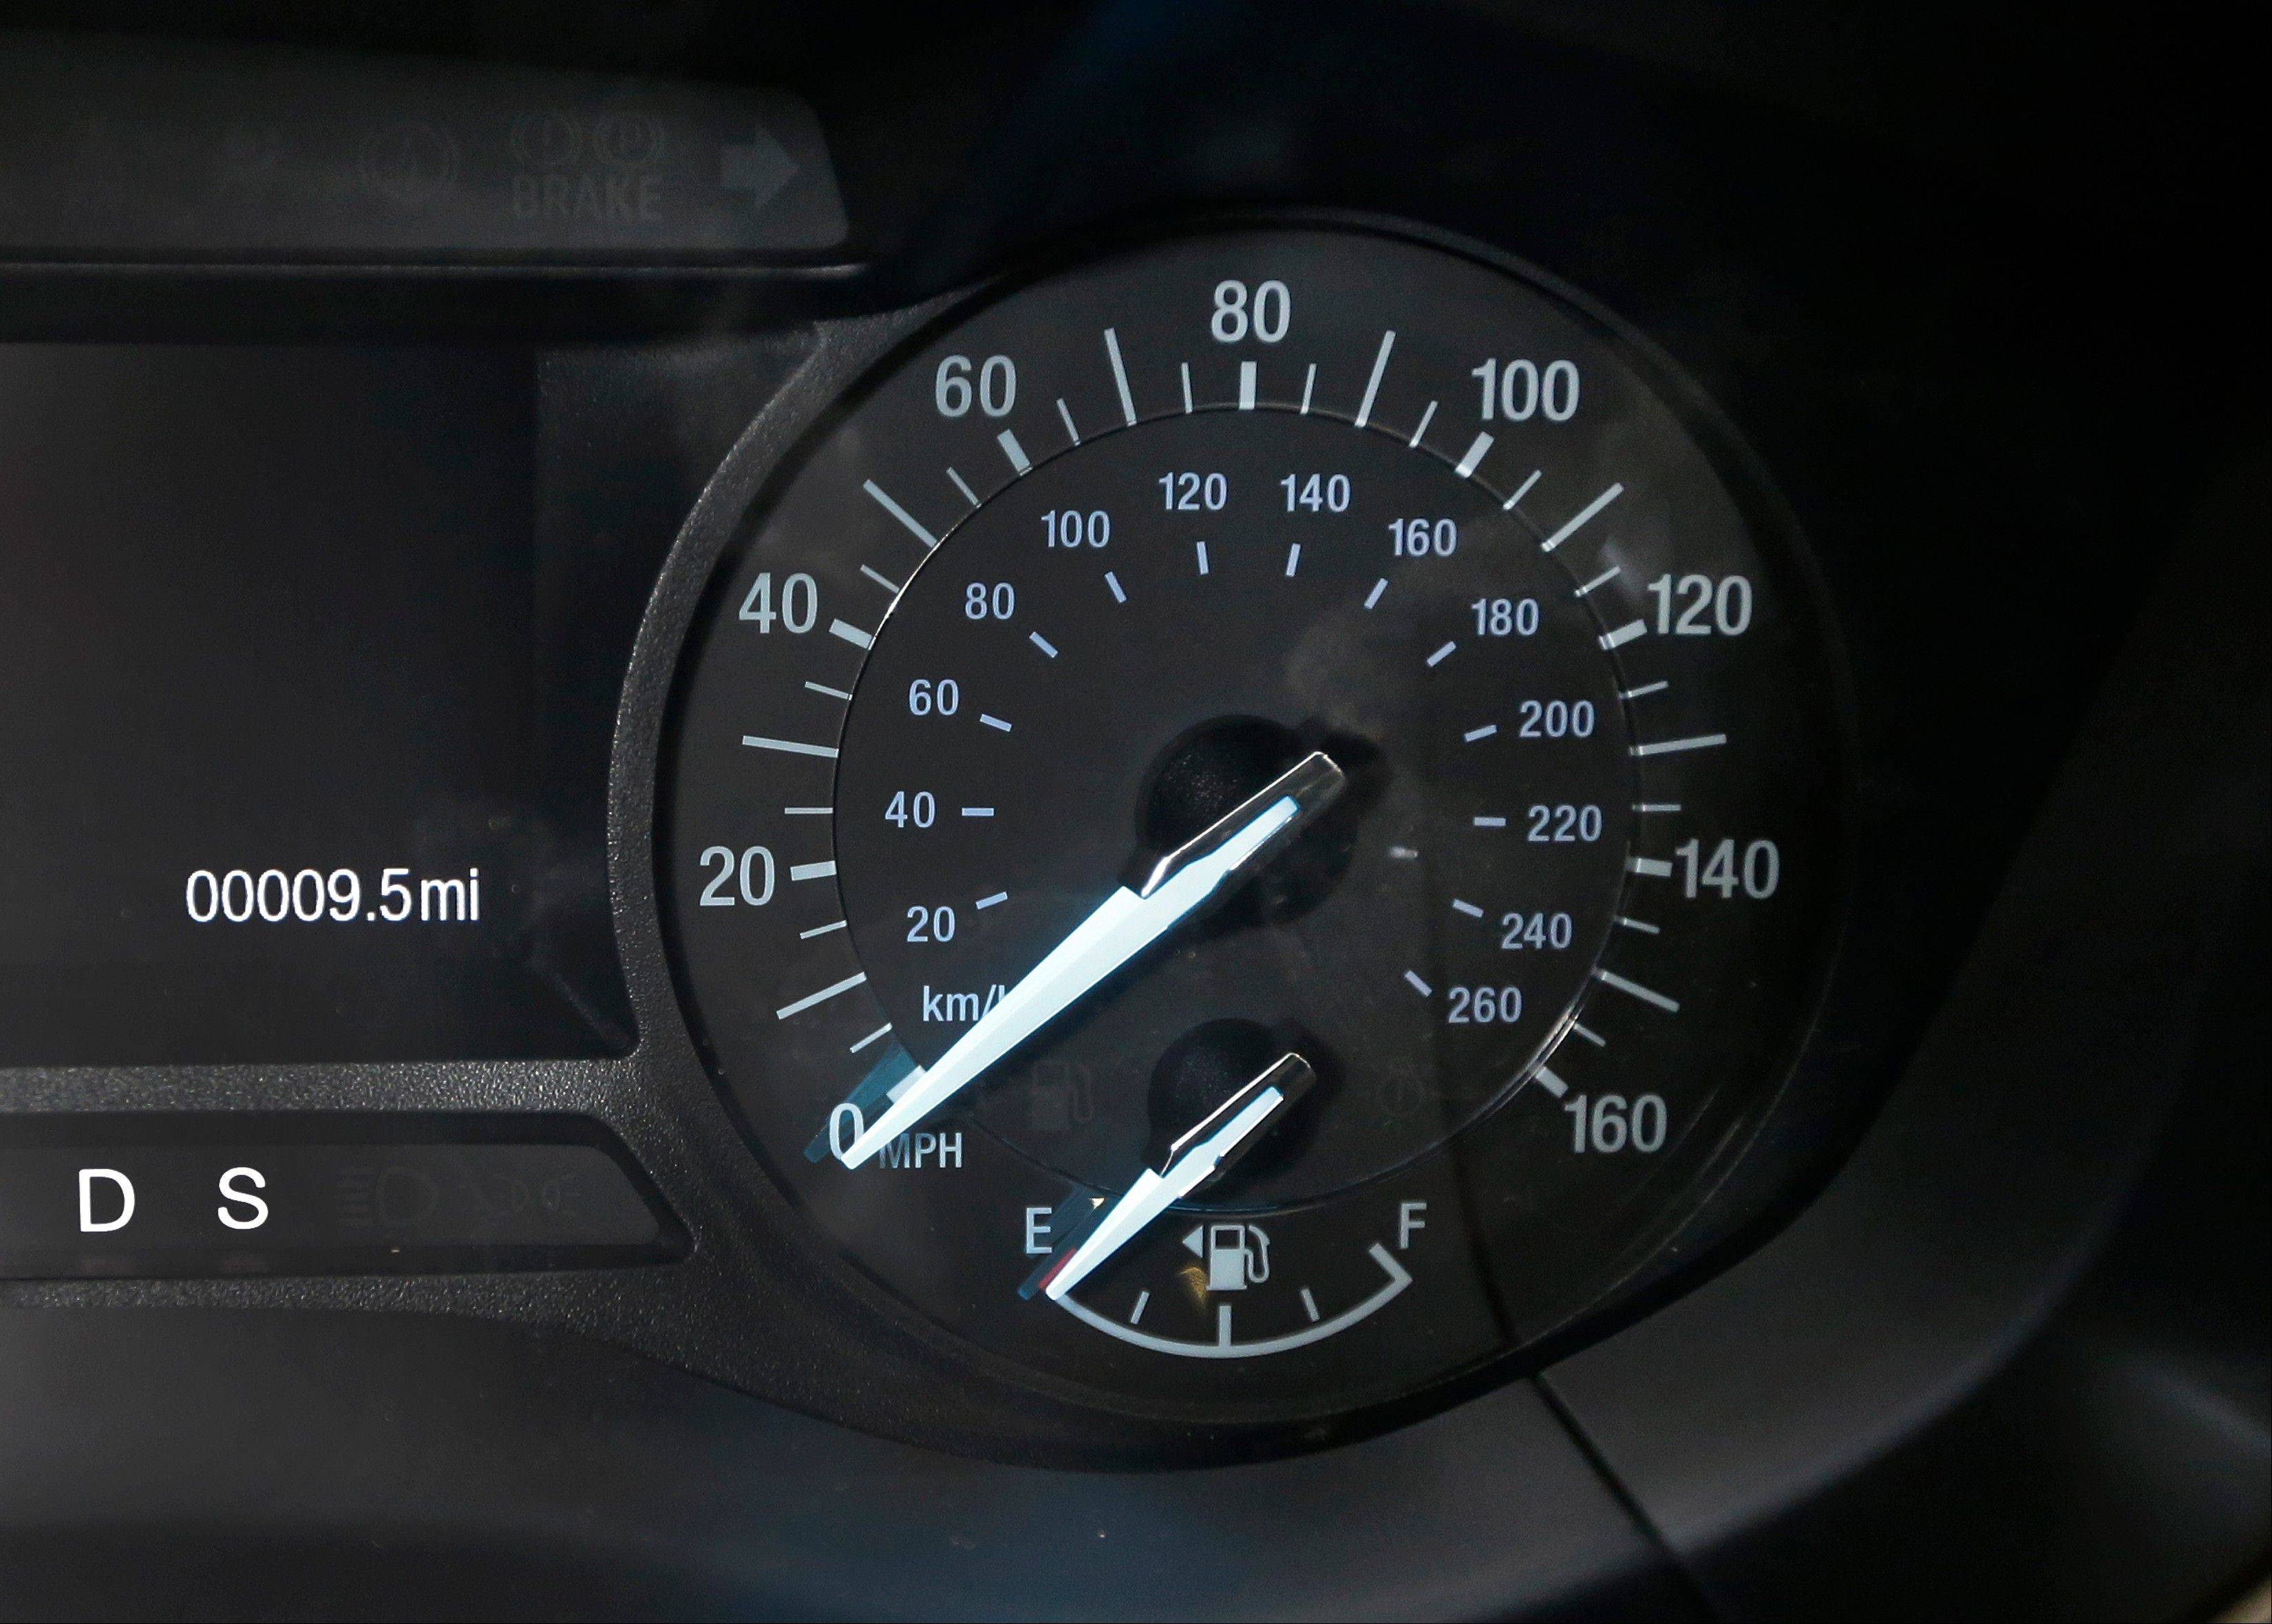 The speedometer of a 2013 Ford Fusion displayed at the Bob Maxey dealership in Detroit. Although current cars with high-horsepower engines can come close to the top speedometer speeds, most are limited by engine control computers. That�s because the tires can overheat and fail at higher speeds.